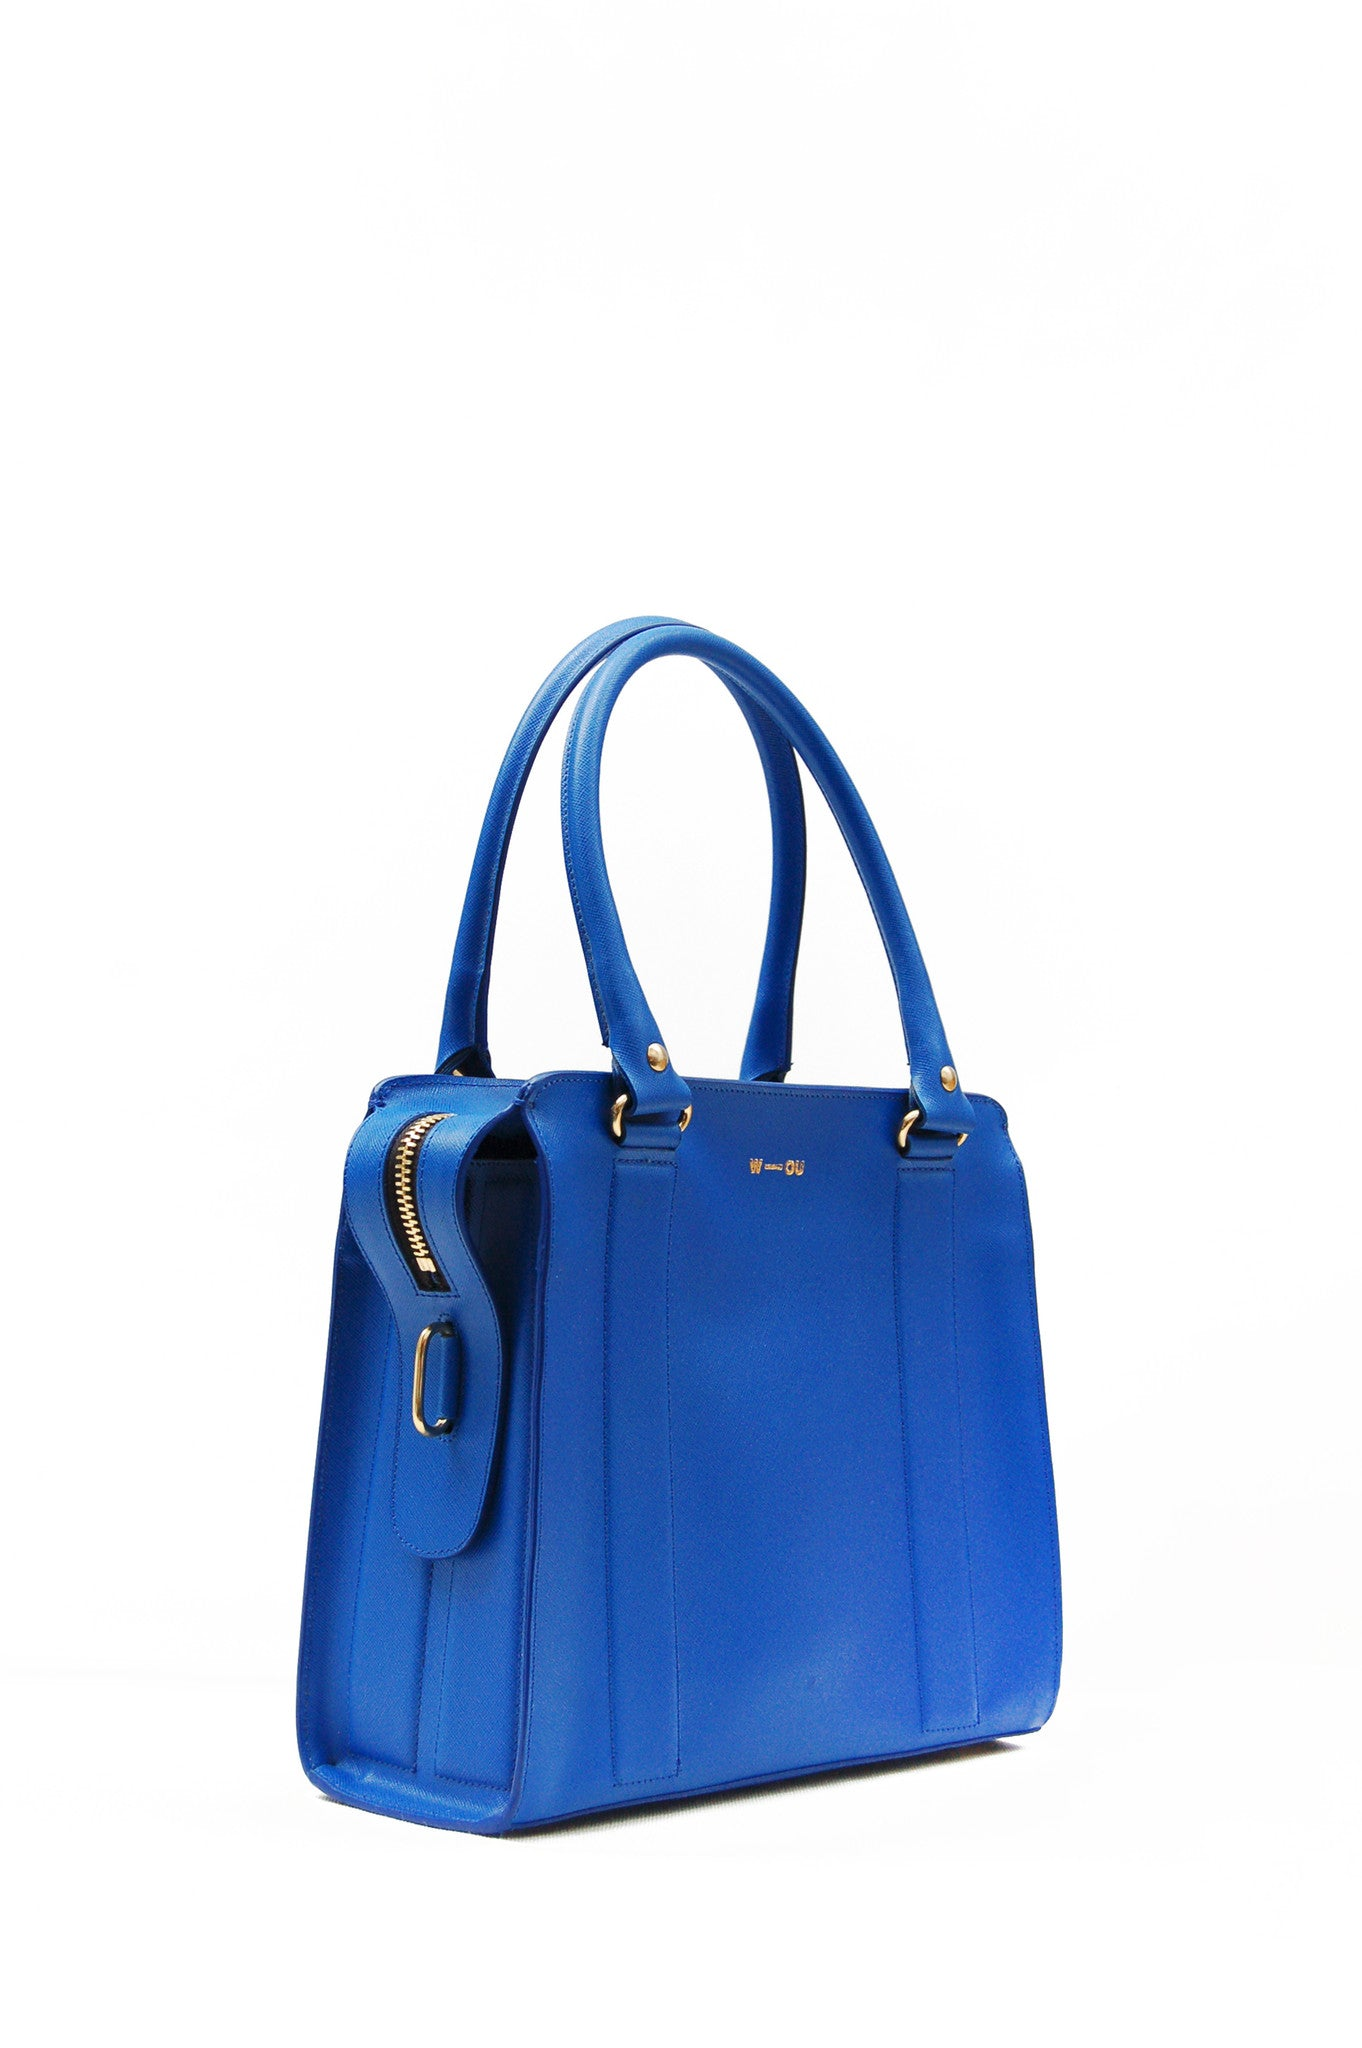 Wendee Ou: Middleton structured bag blue | Bags,Bags > Totes -  Hiphunters Shop